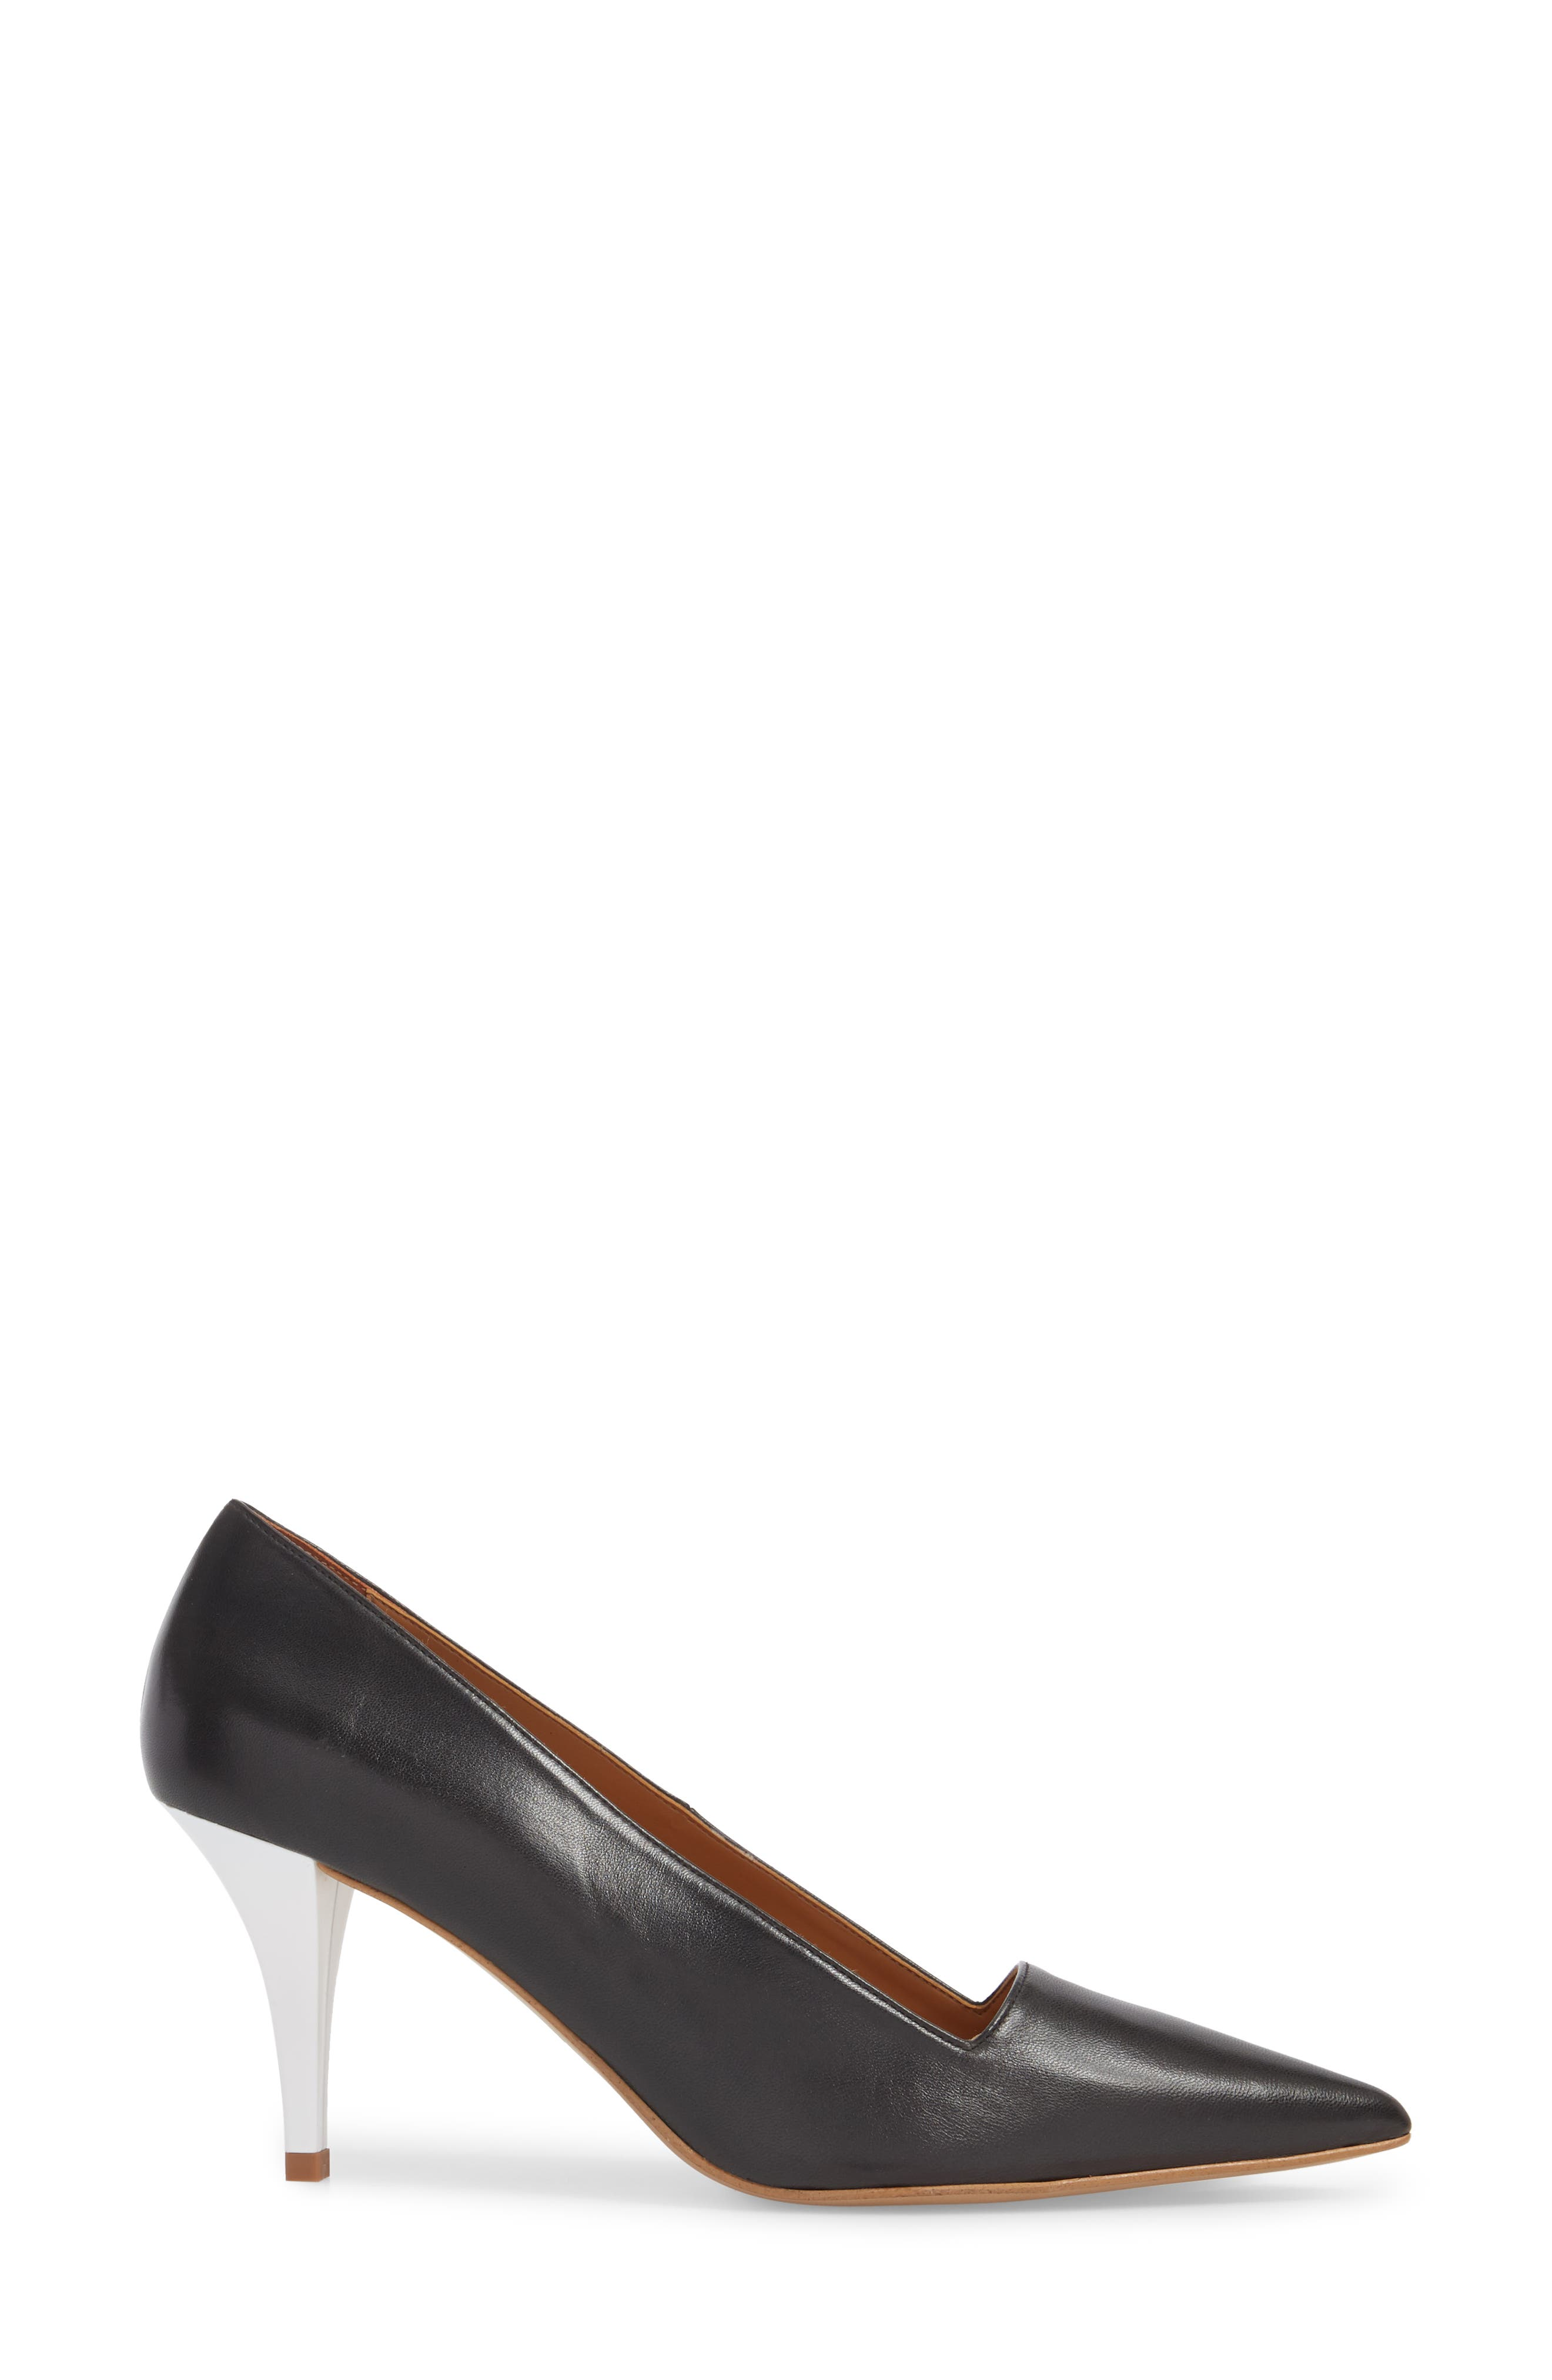 Jubilee Pointy Toe Pump,                             Alternate thumbnail 3, color,                             BLACK MULTI